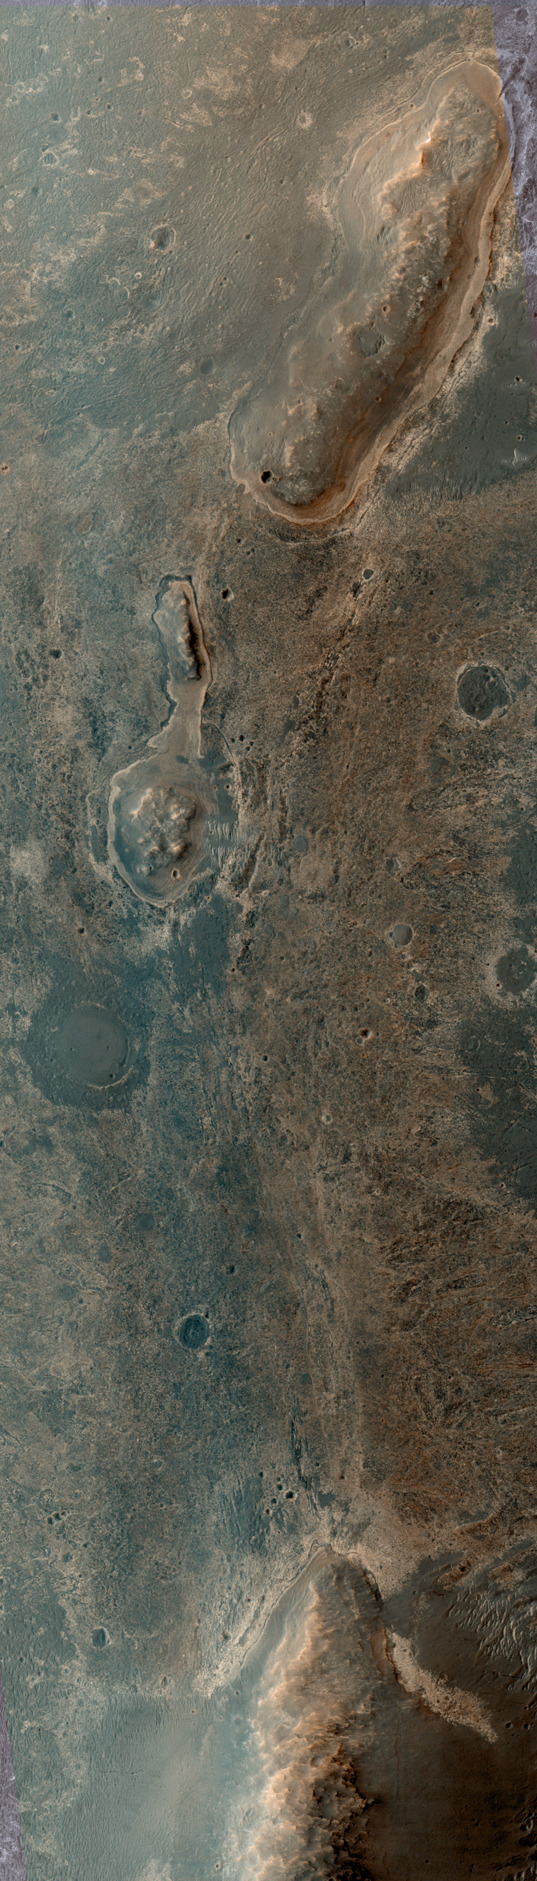 HiRISE view of Opportunity, sol 3361